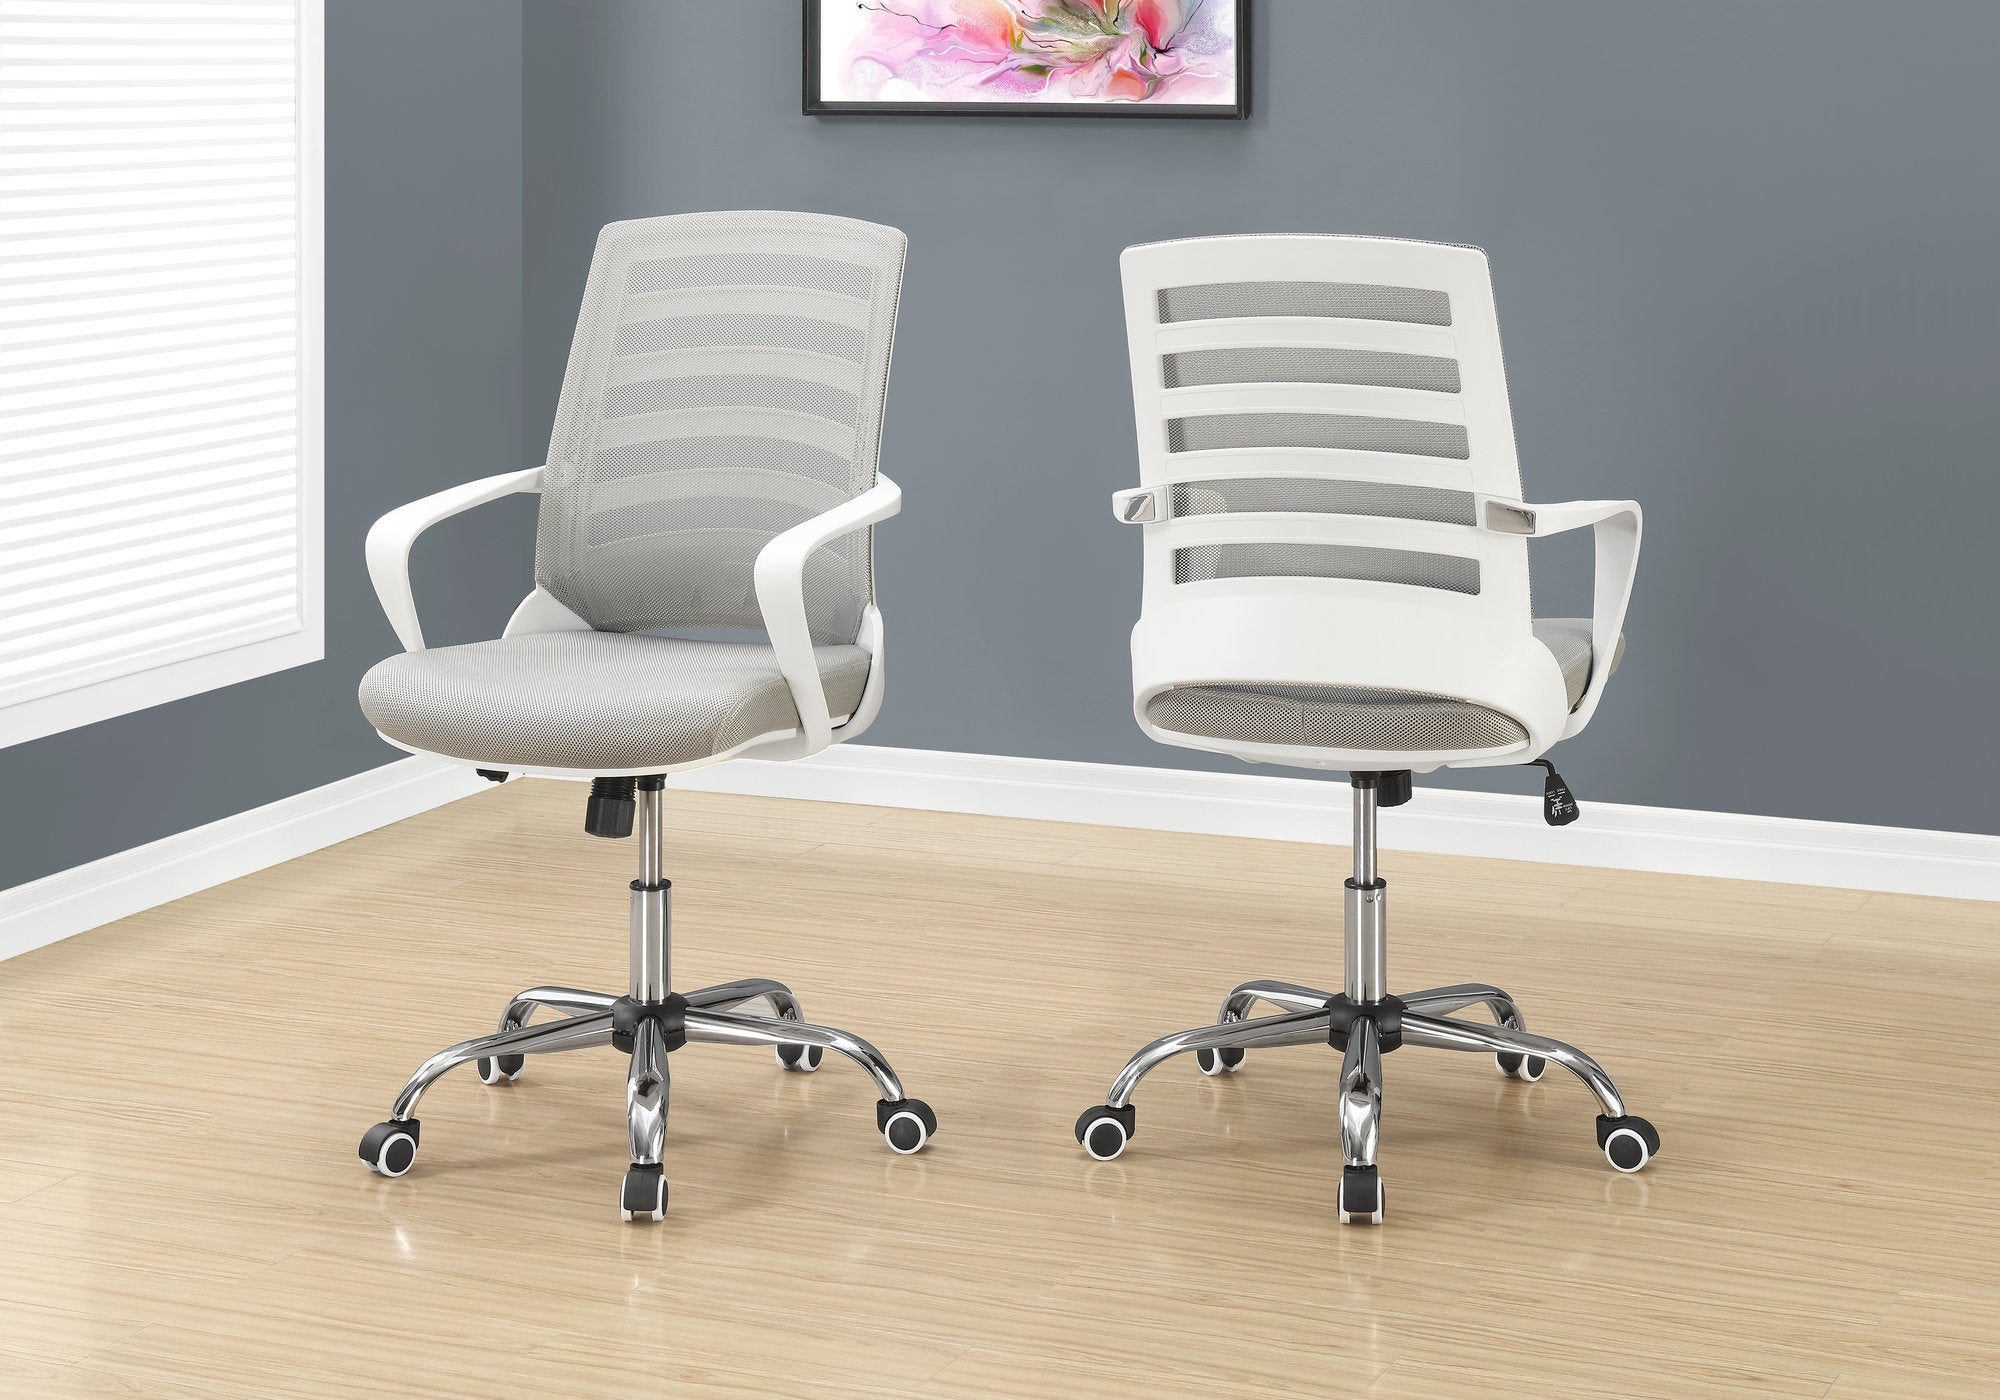 Ergonomic White Mesh Rolling Office Chair w/ Arms